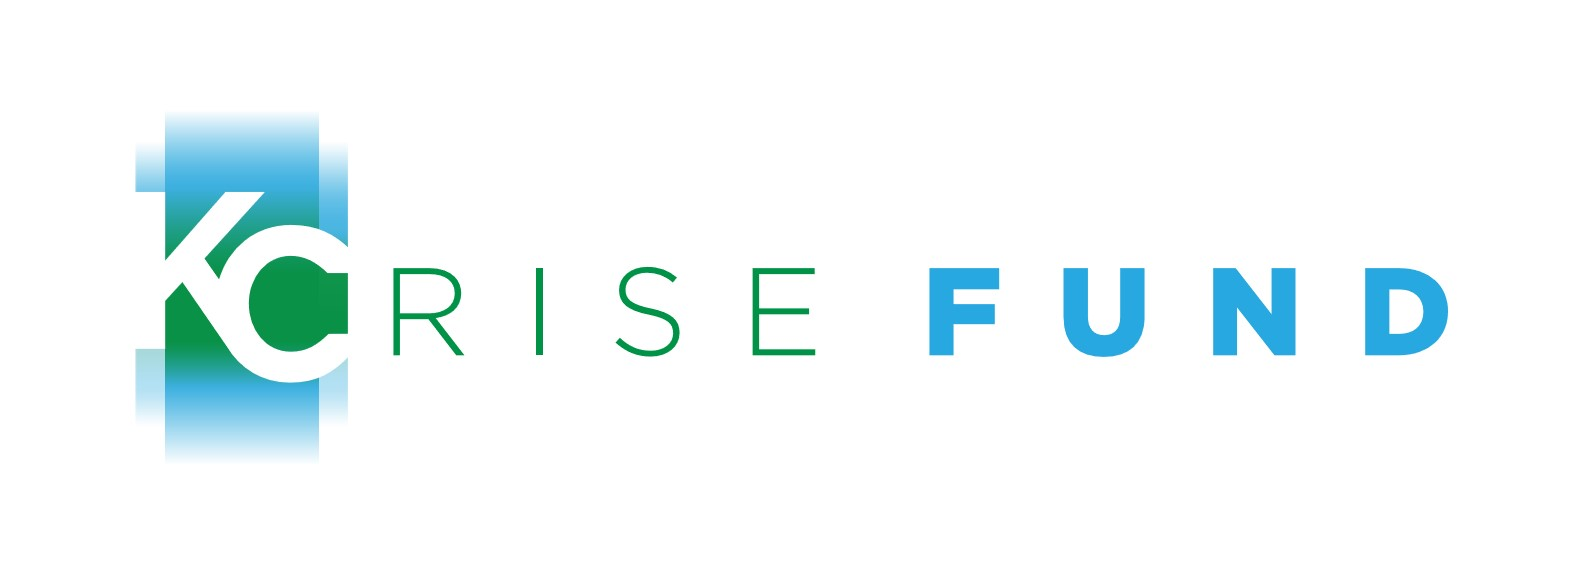 KC Rise Fund